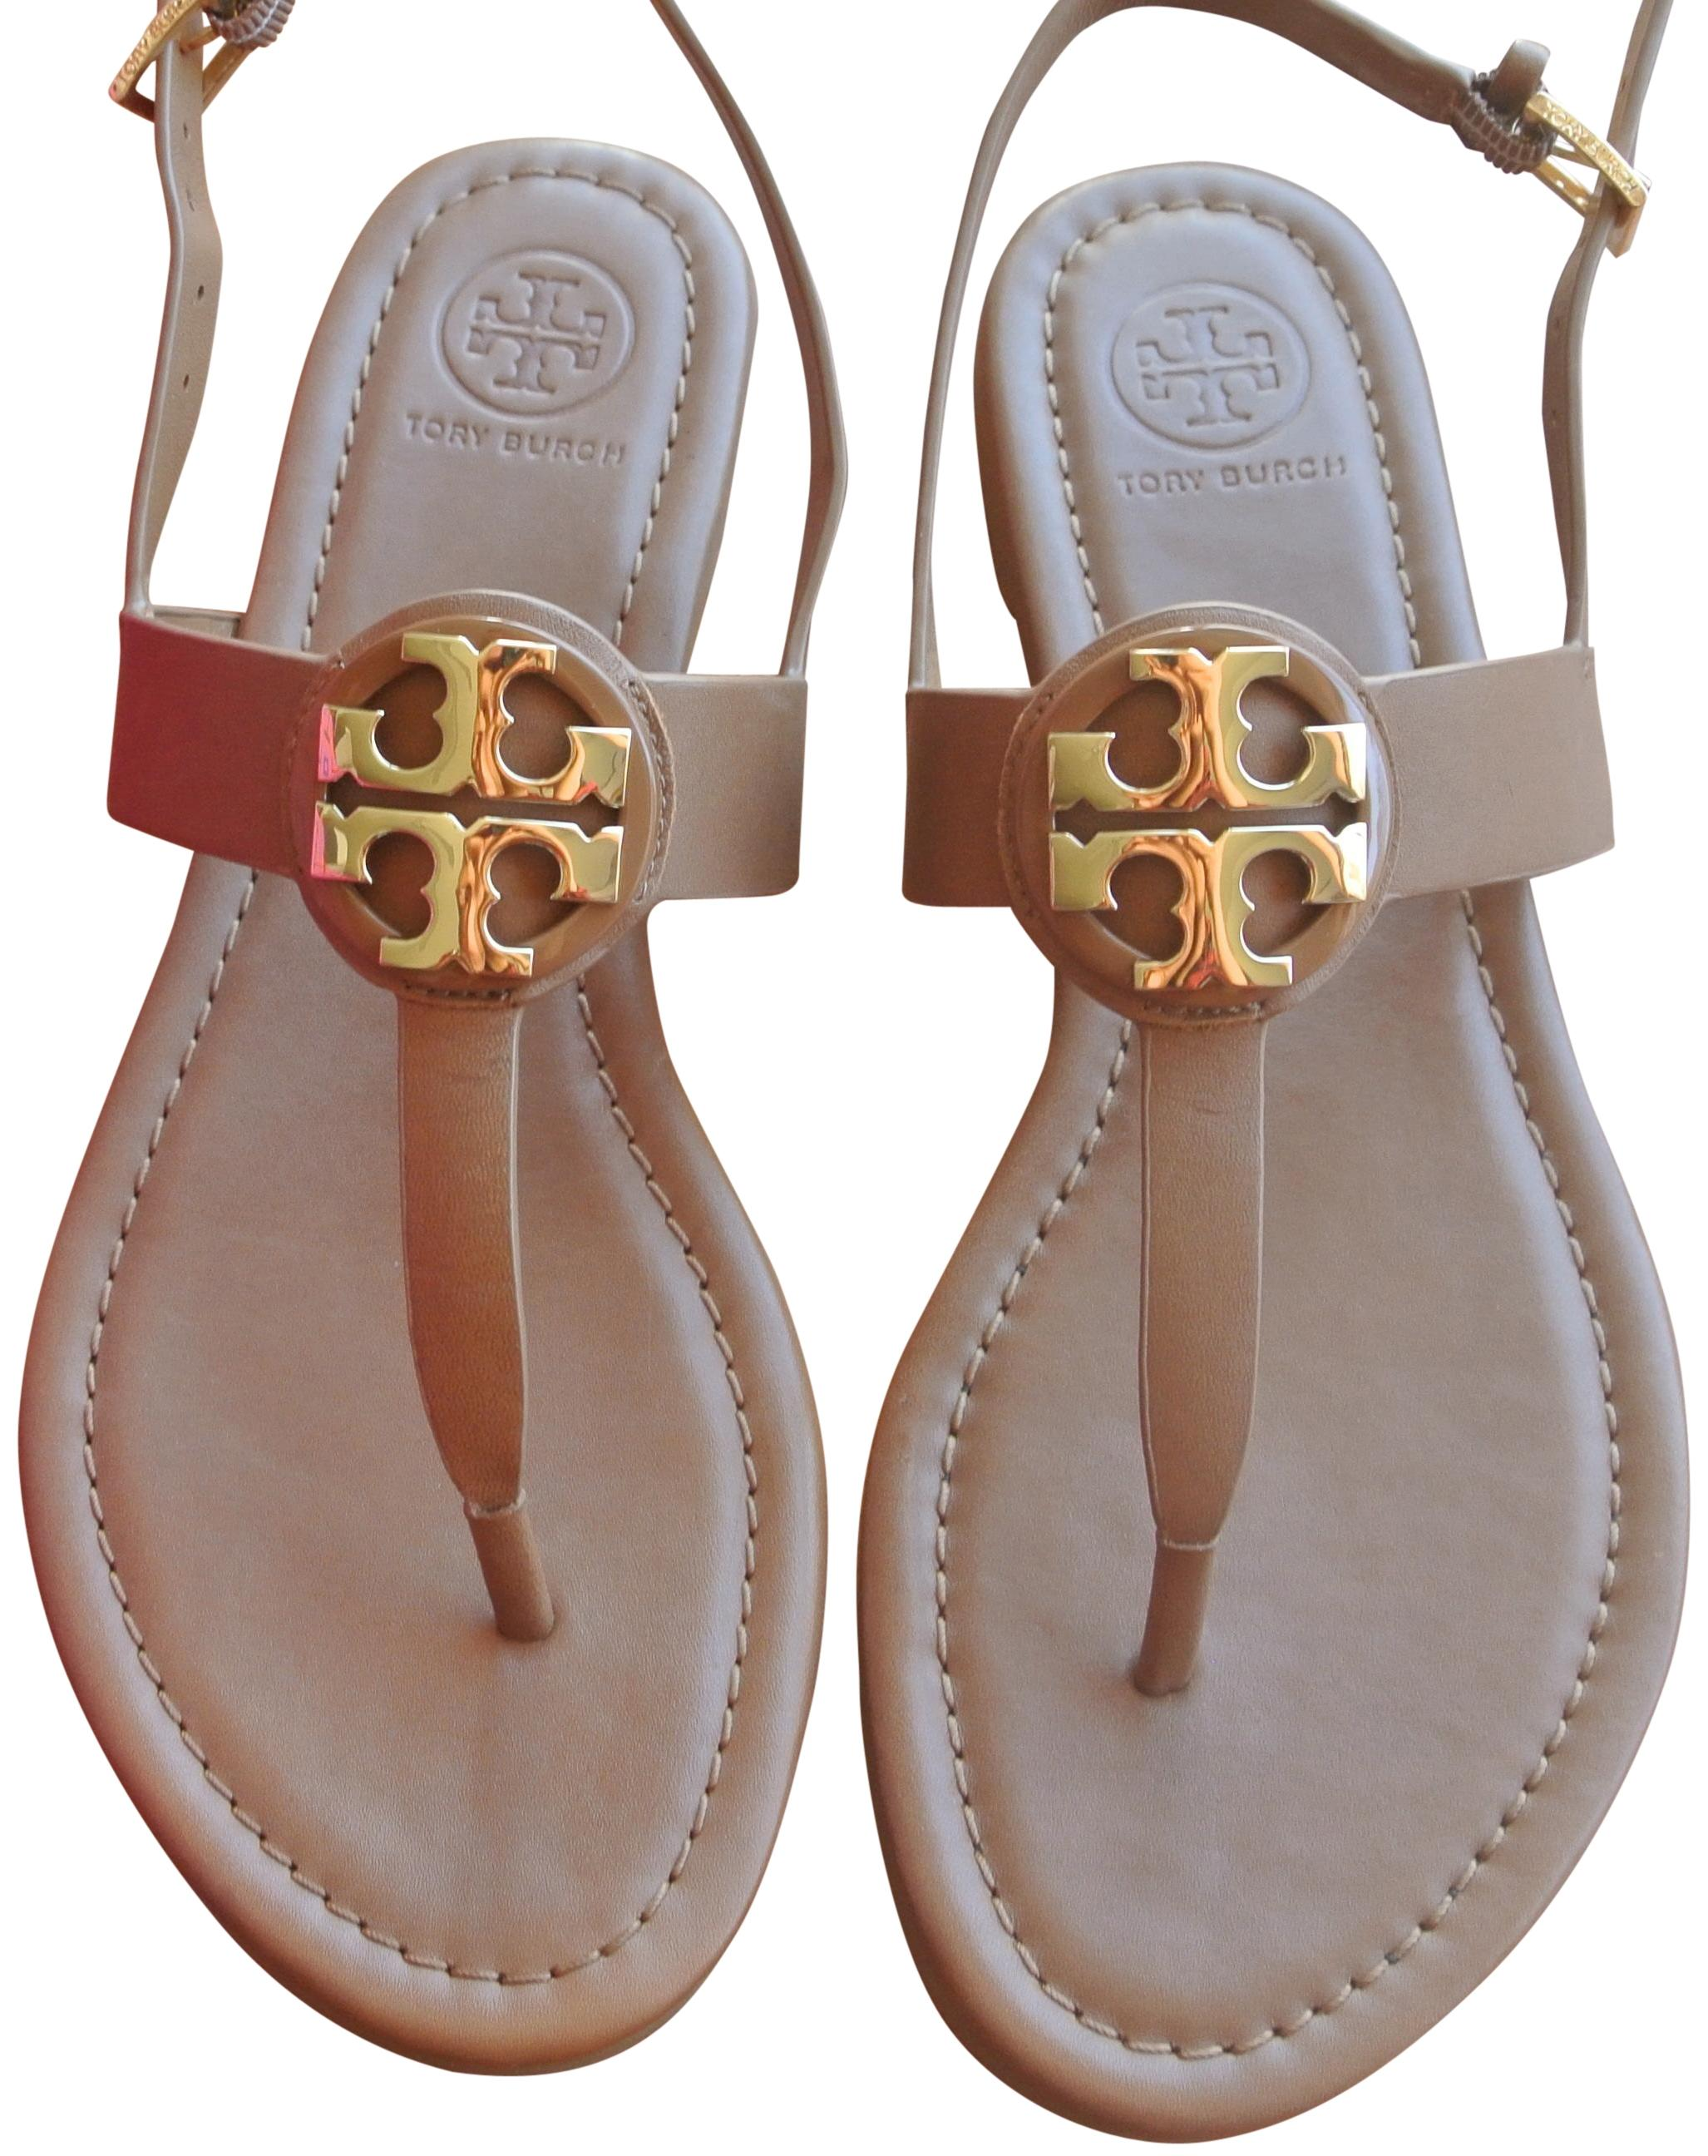 Tory Burch Brown End-of-summer-sale Royal Tan/Gold Bryce Flat Sandals Size US 7.5 Regular (M, B)